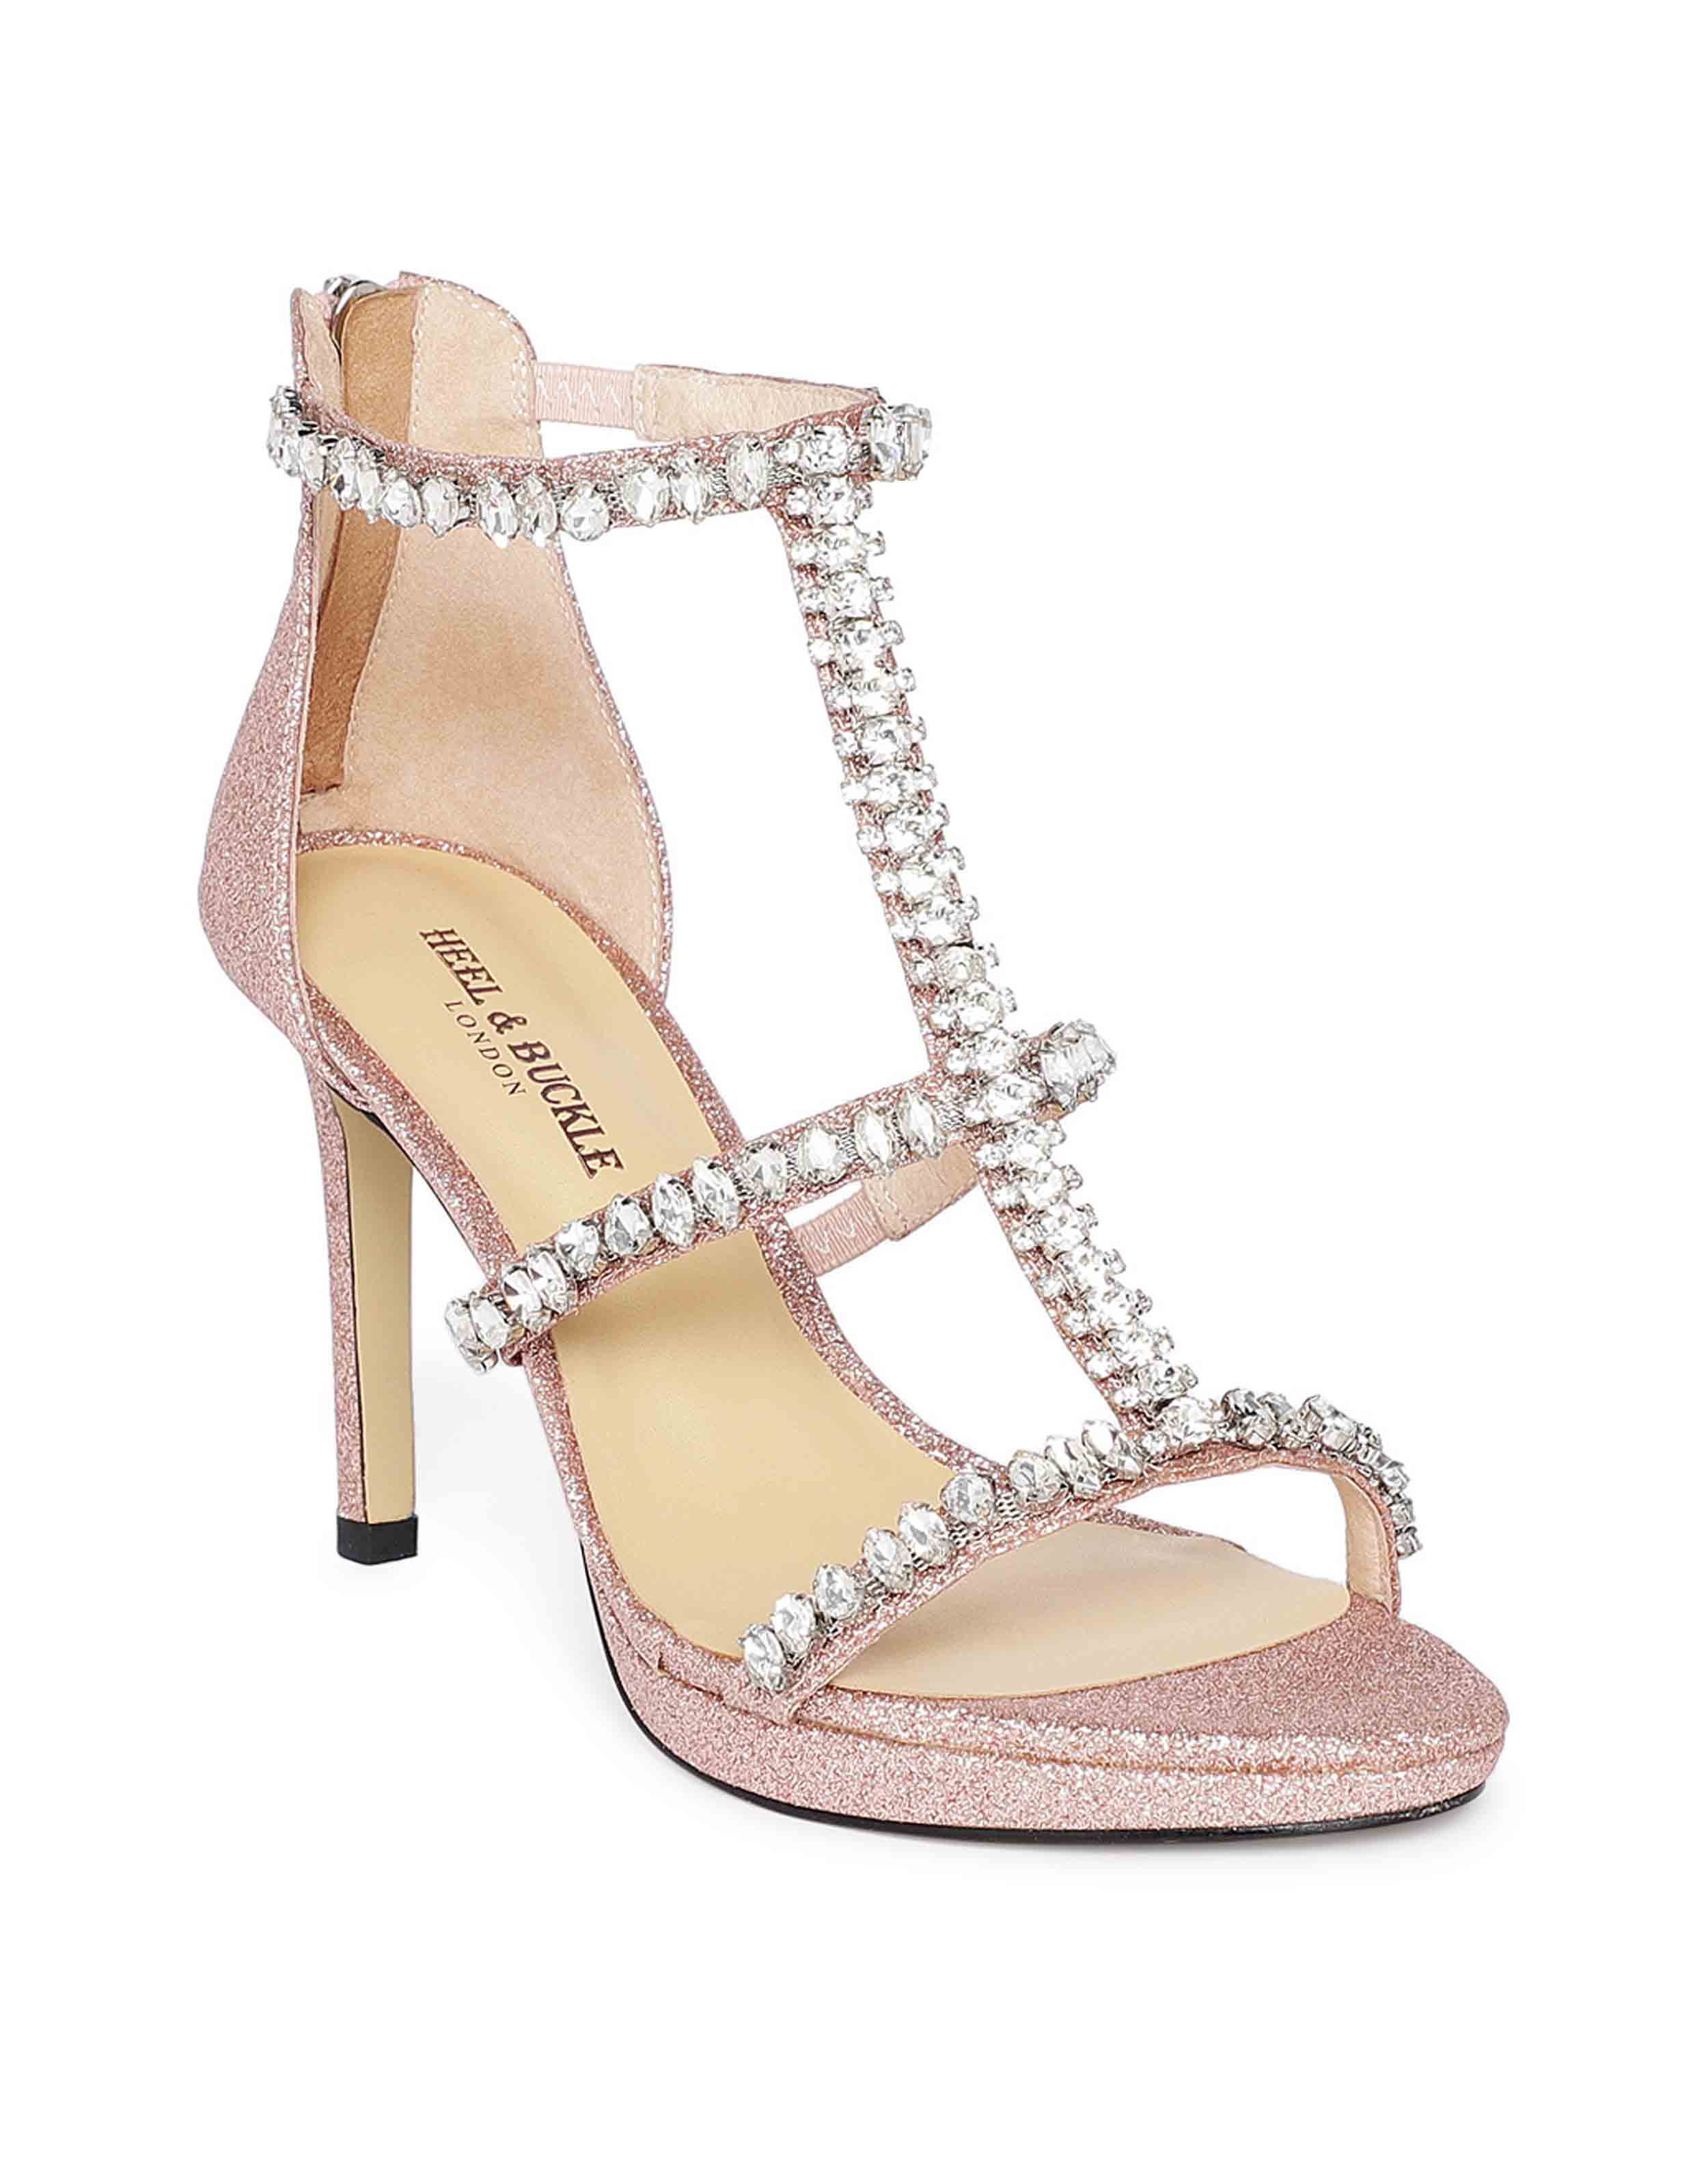 Shimmery Sandals2